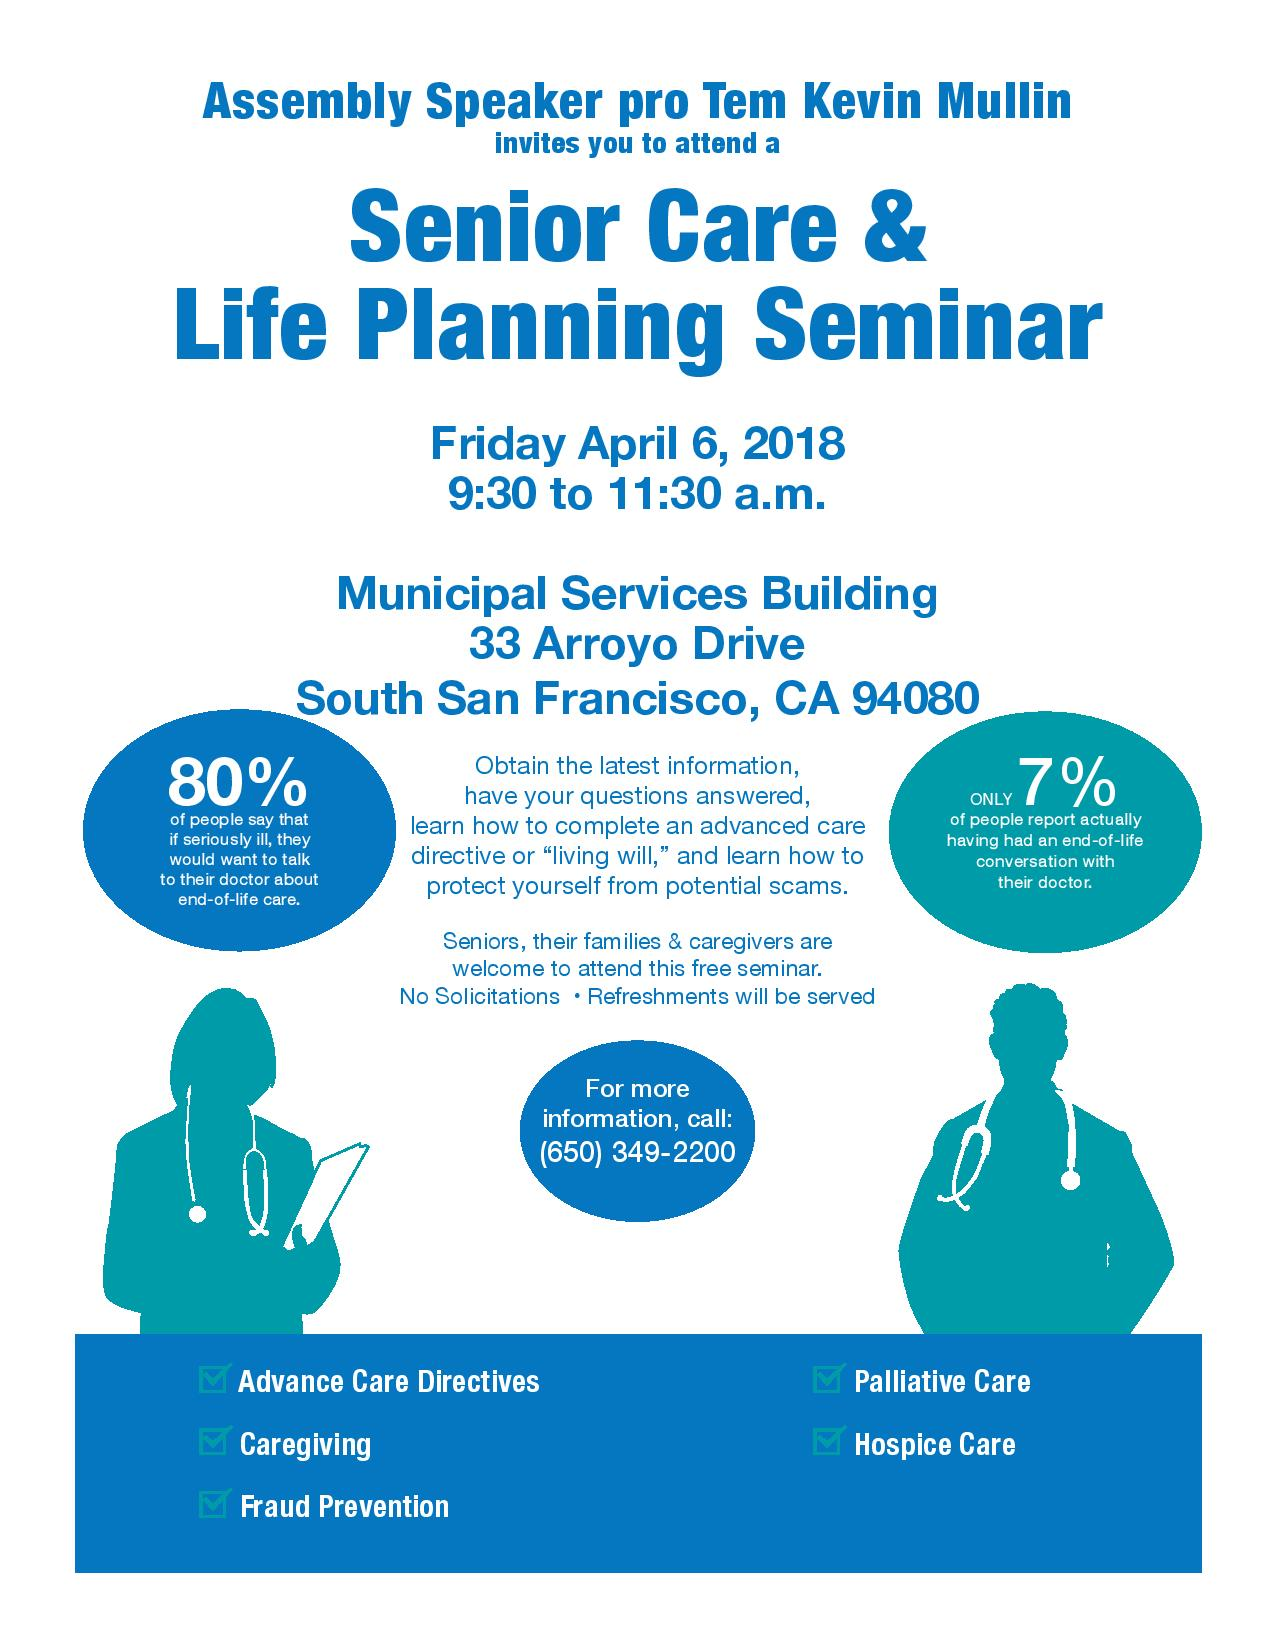 Assembly Speaker pro Tem Kevin Mullin's Senior Care & Life Planning Seminar on Friday, April 6